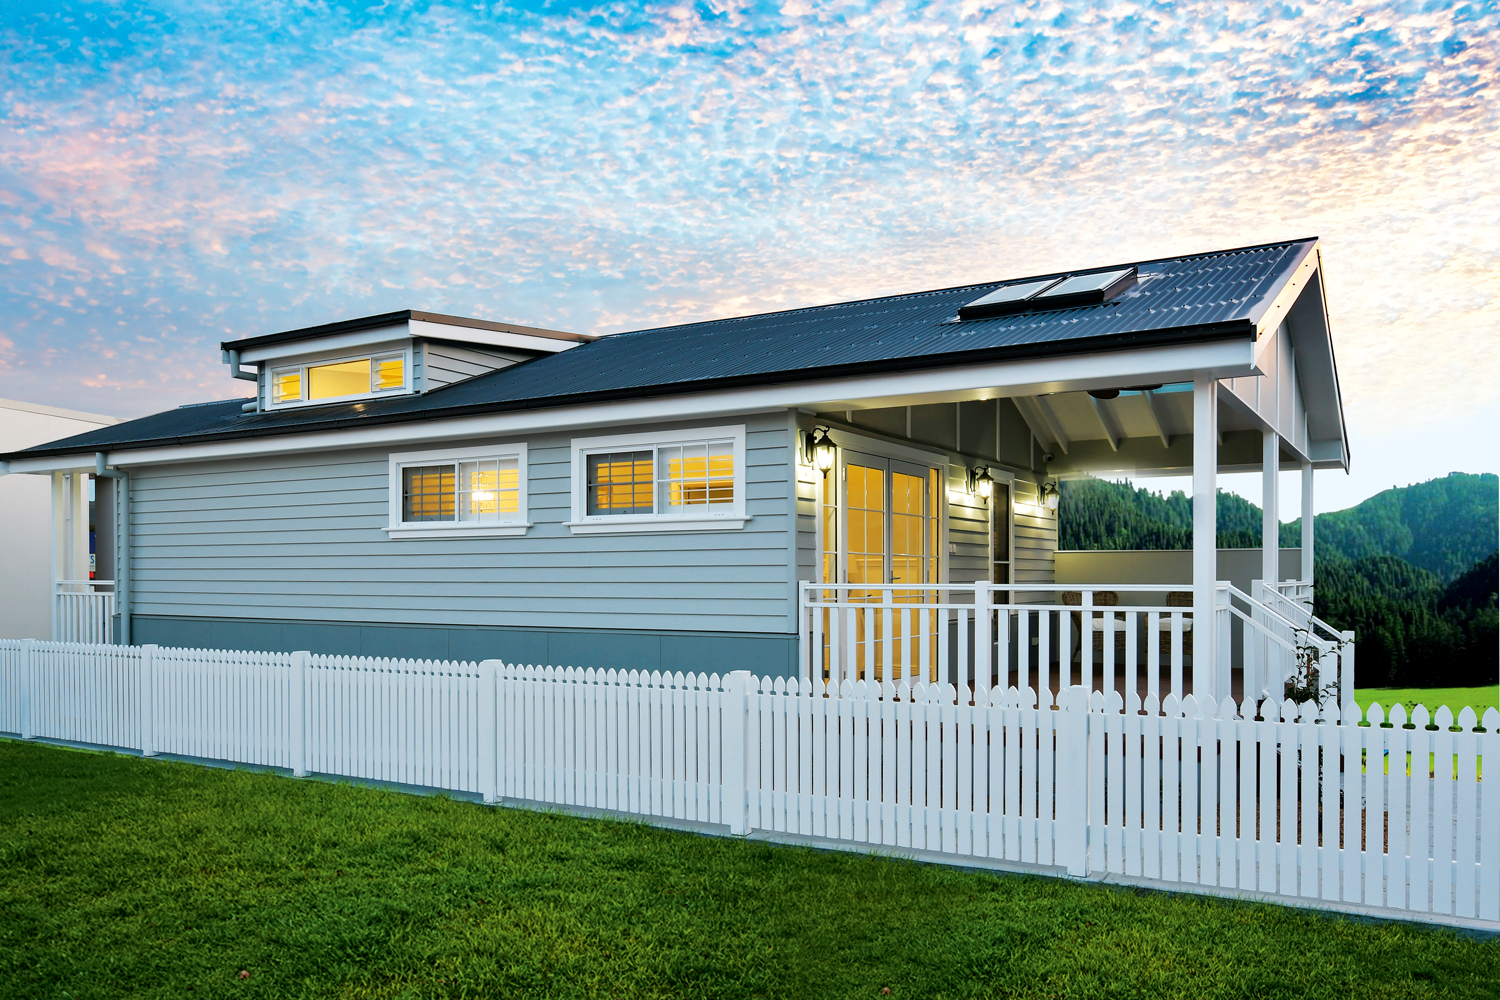 This modular home embodies Hamptons for an easy yet classic build